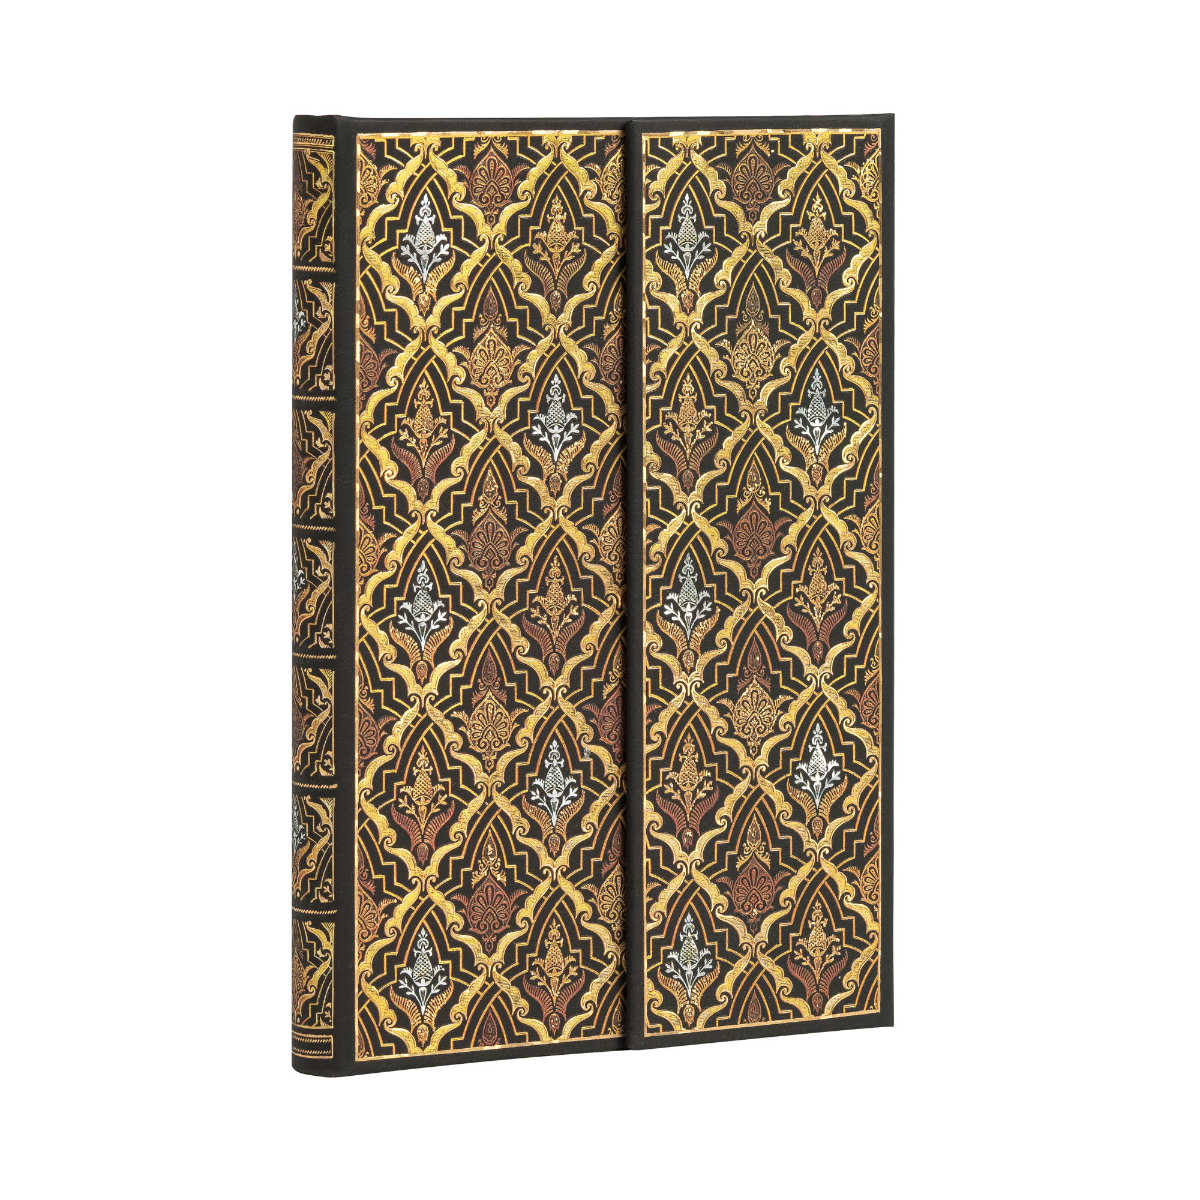 Paperblanks Voltaire Destiny Mini 4 x 5.5 Inch Journal